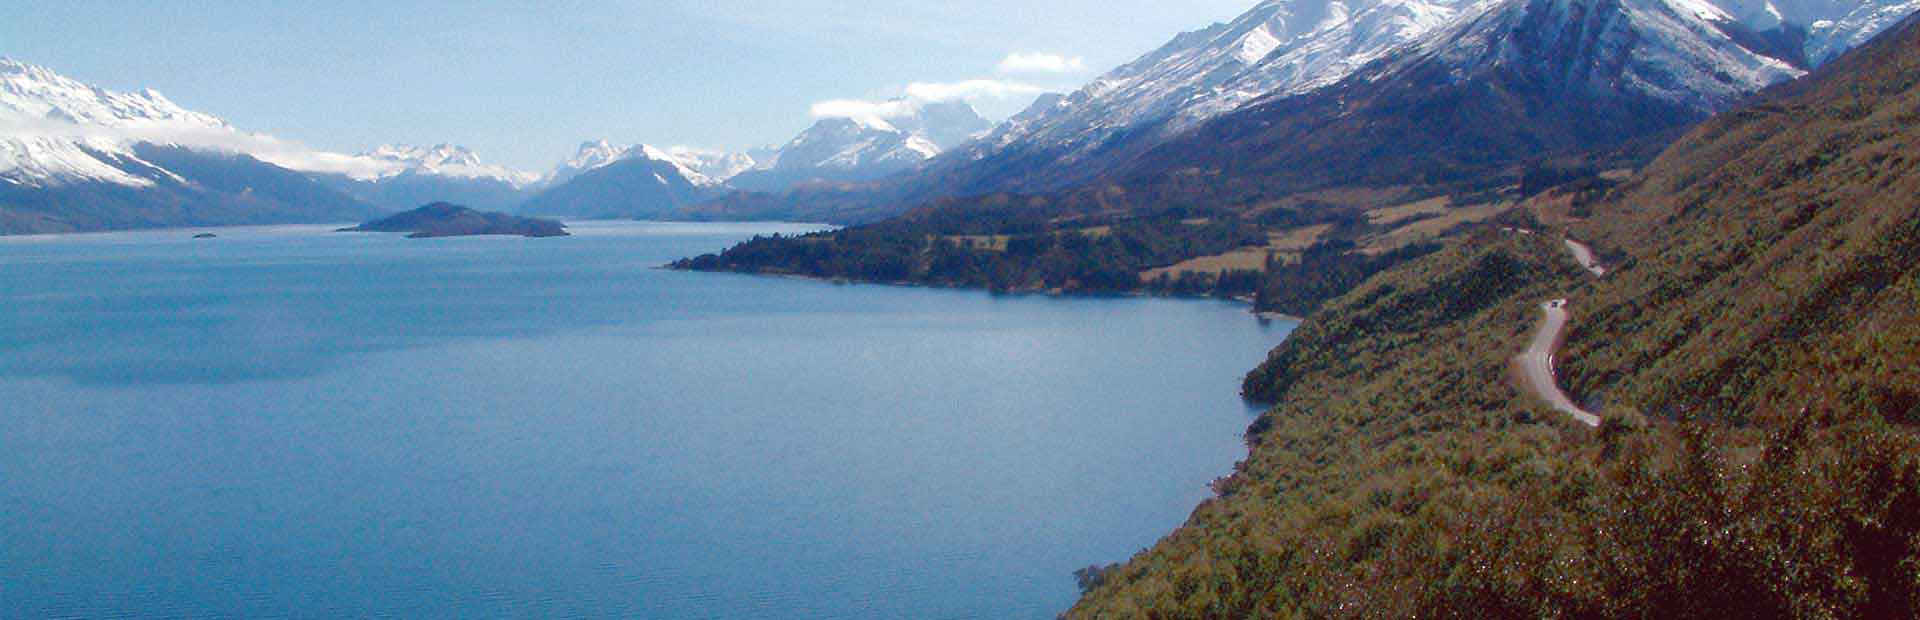 Safari of The Scenes Glenorchy Nomad (Max 6 per vehicle)